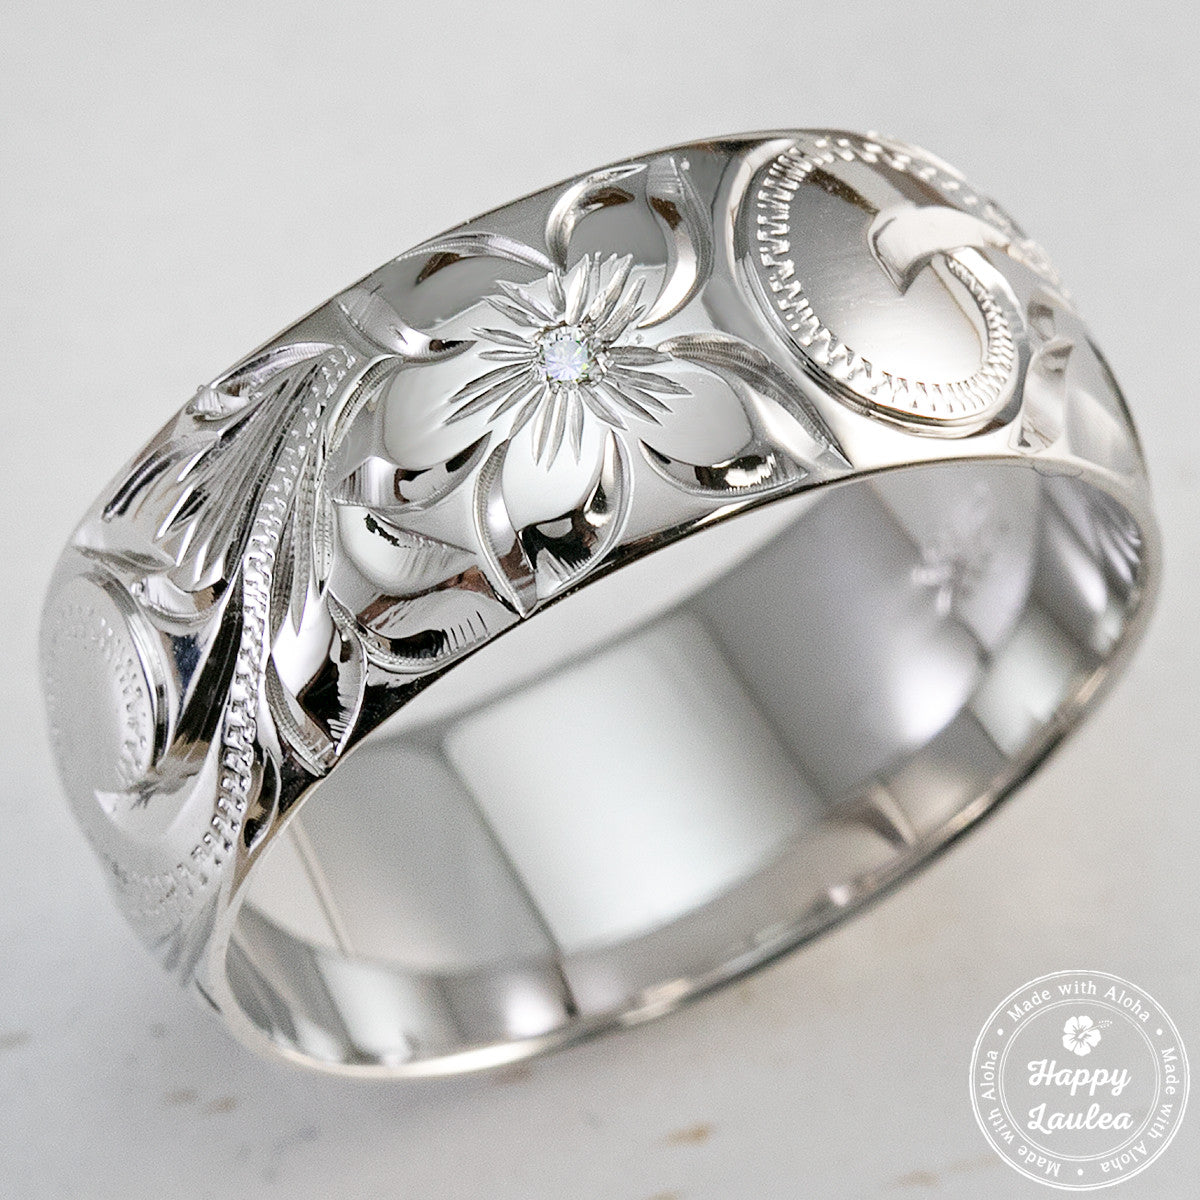 14k white gold 8mm ring engraved with simple